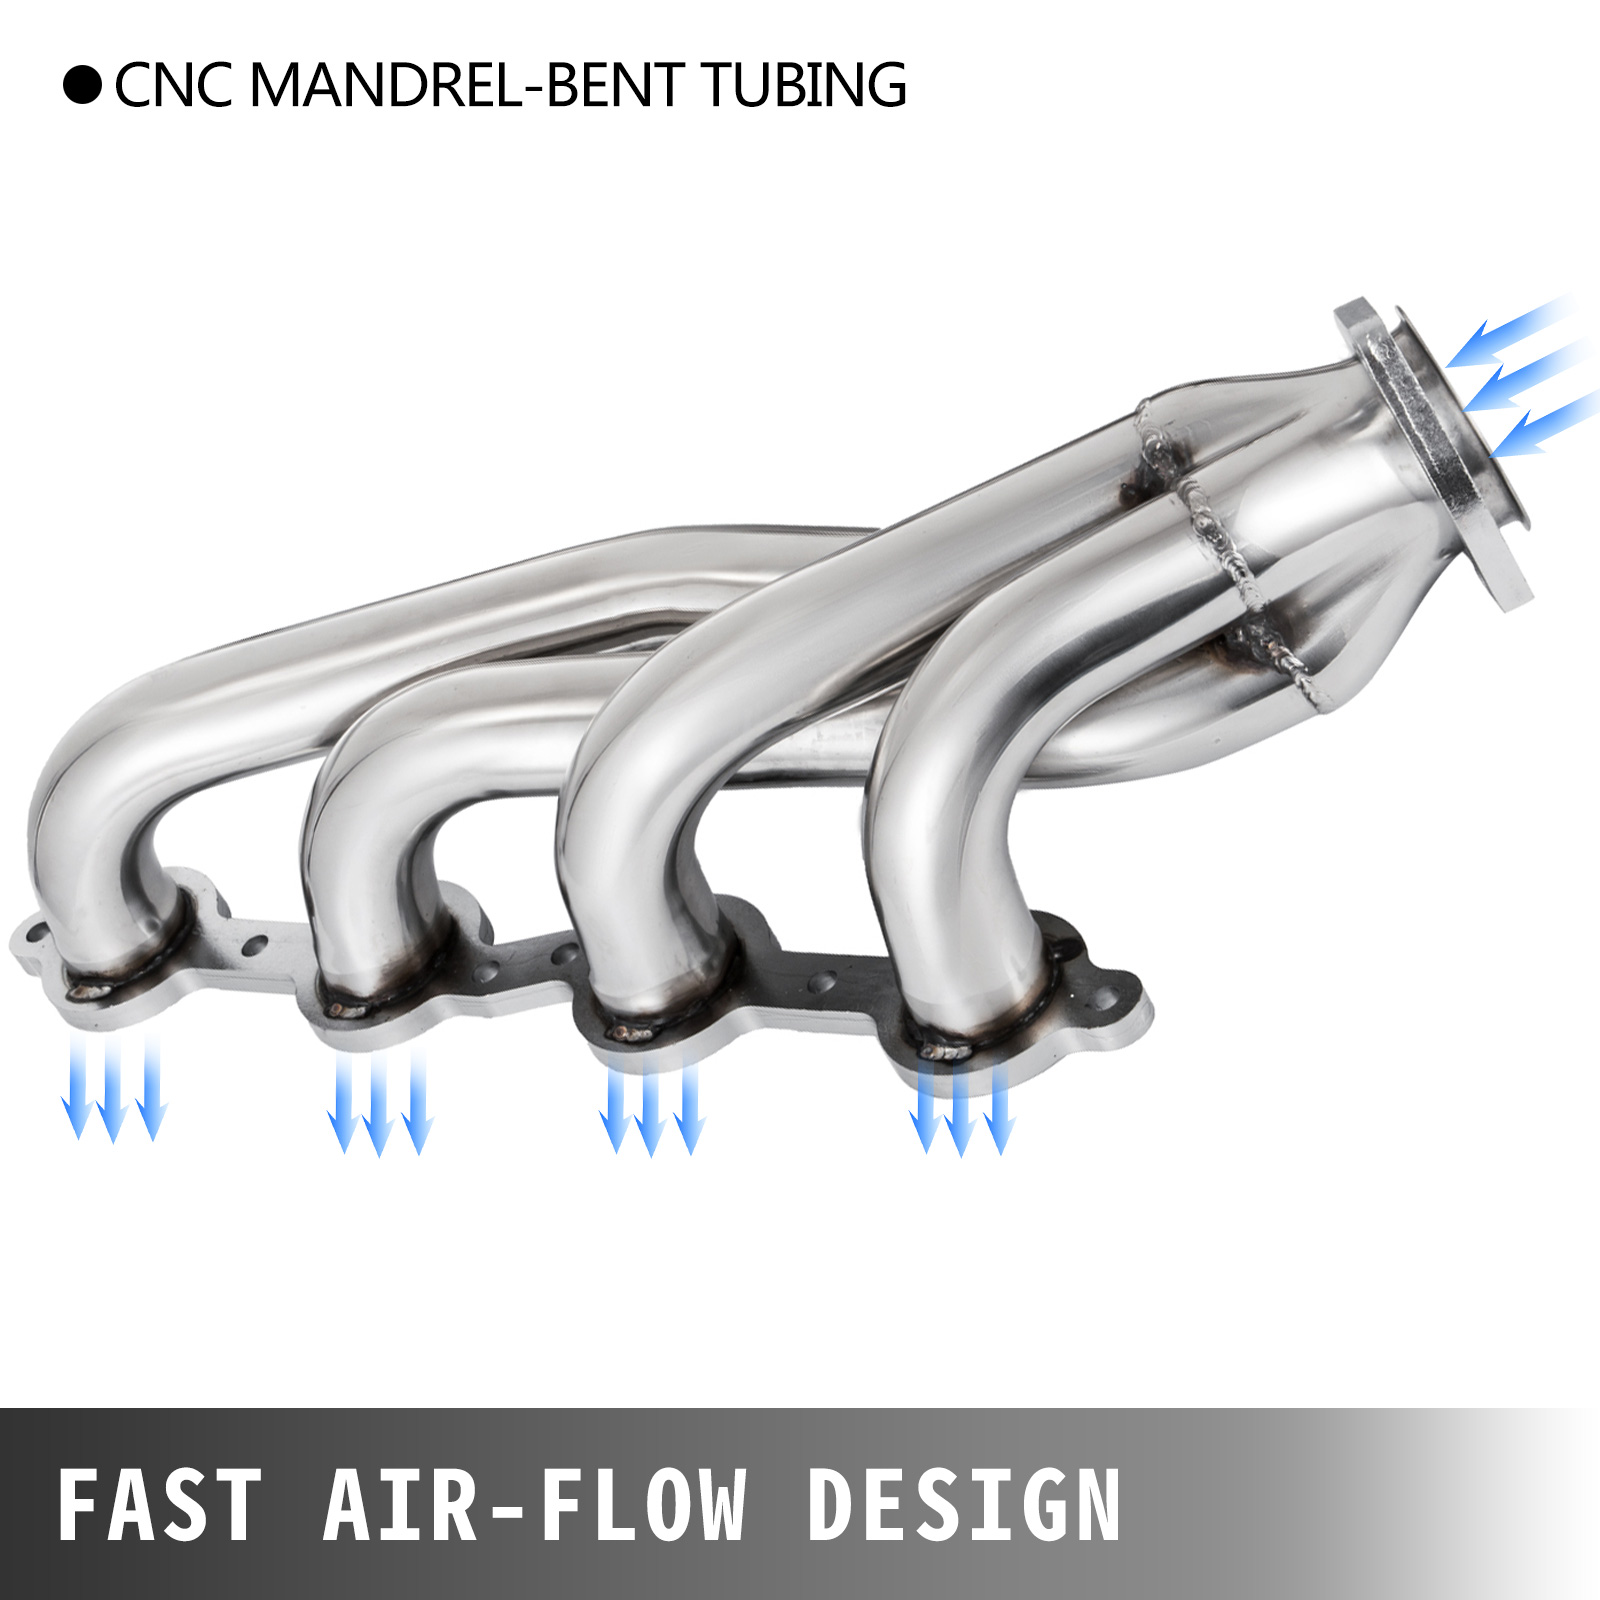 COSTBILE Exhaust Manifold Automotive Replacement S10 Conversion Engine Header Compatible with Chevy LS1 LS2 LS3 LS6 LS9 LS